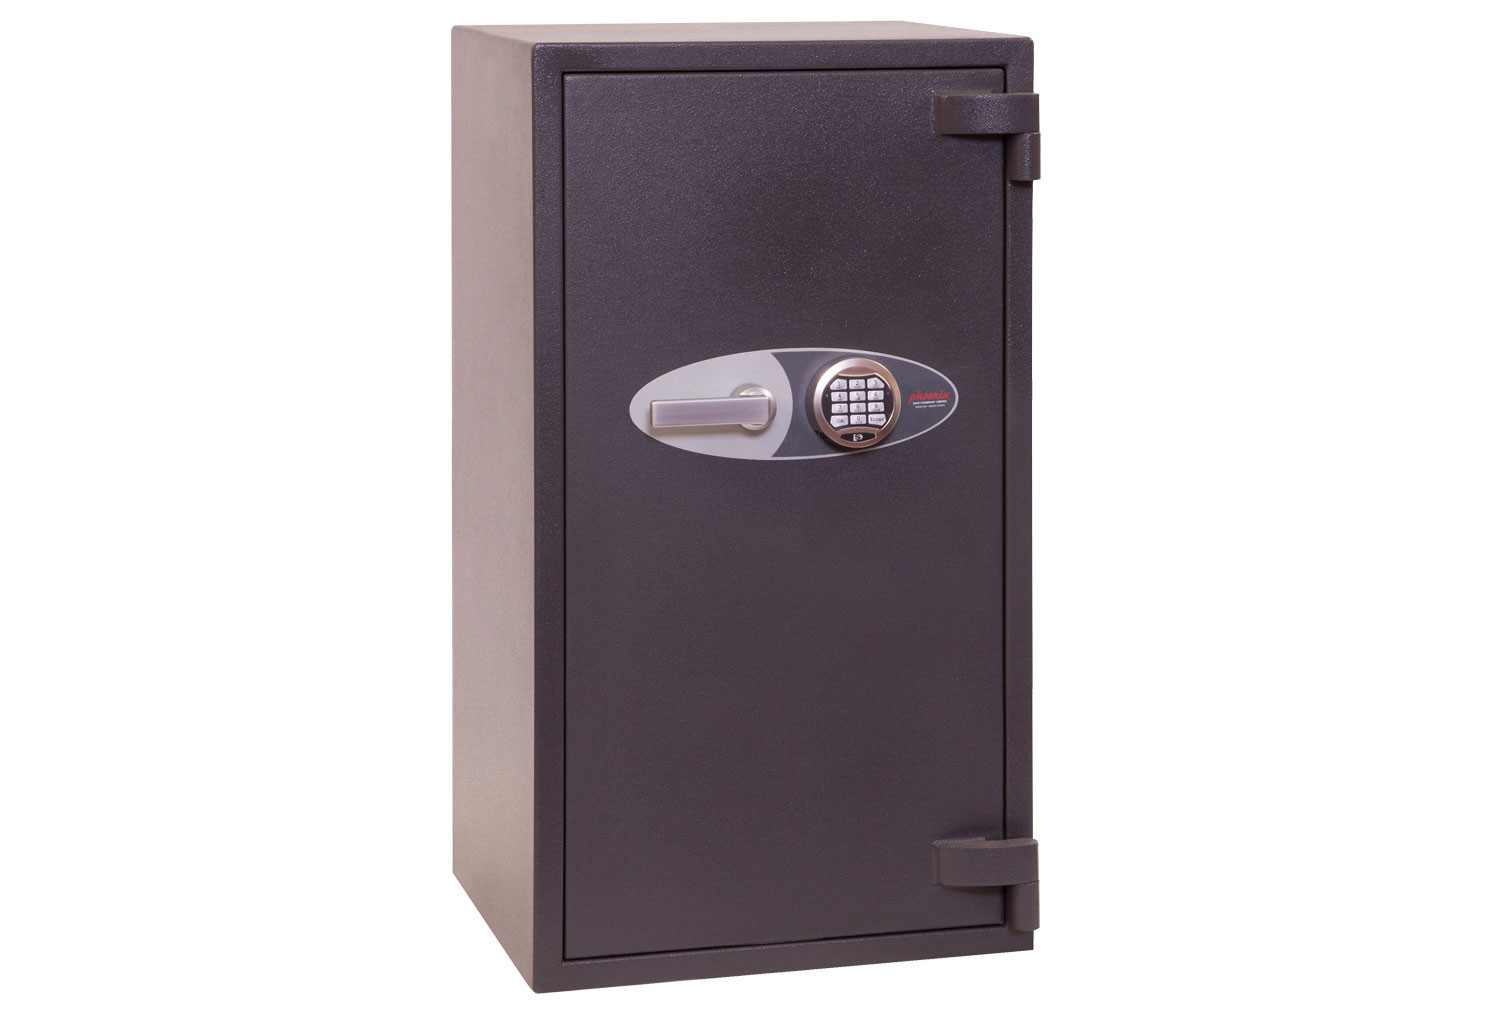 Phoenix Mercury HS2053E High Security Safe With Electronic Lock (110ltrs)